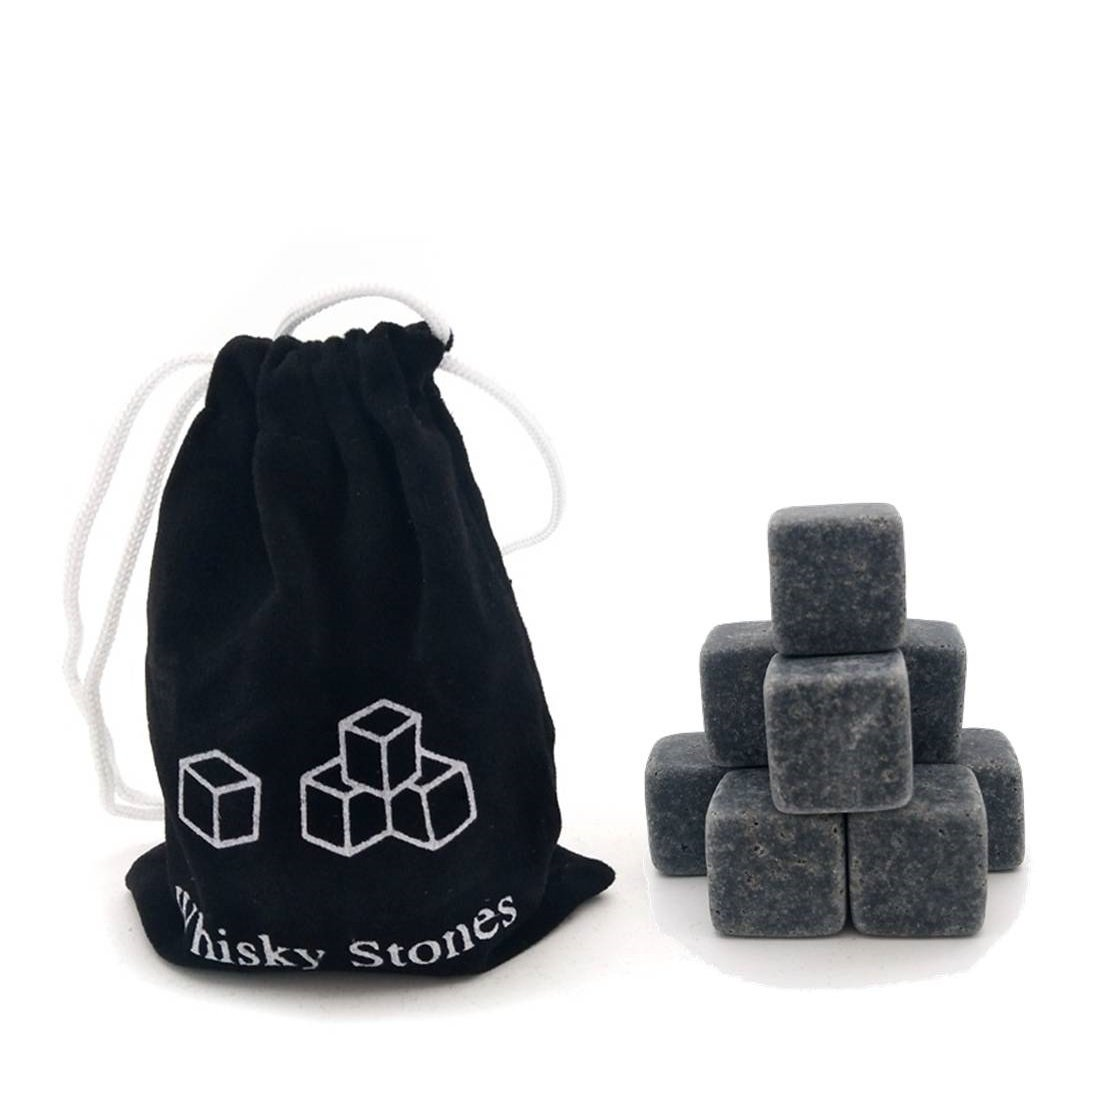 in Gift Box with Velvet Carrying Pouch Chilling Stones Set of 9 Drinking Rocks for Beverage Vodka Reusable Ice Cube Made of 100/% Pure Soapstone Awekris Whiskey Stones Gift Set